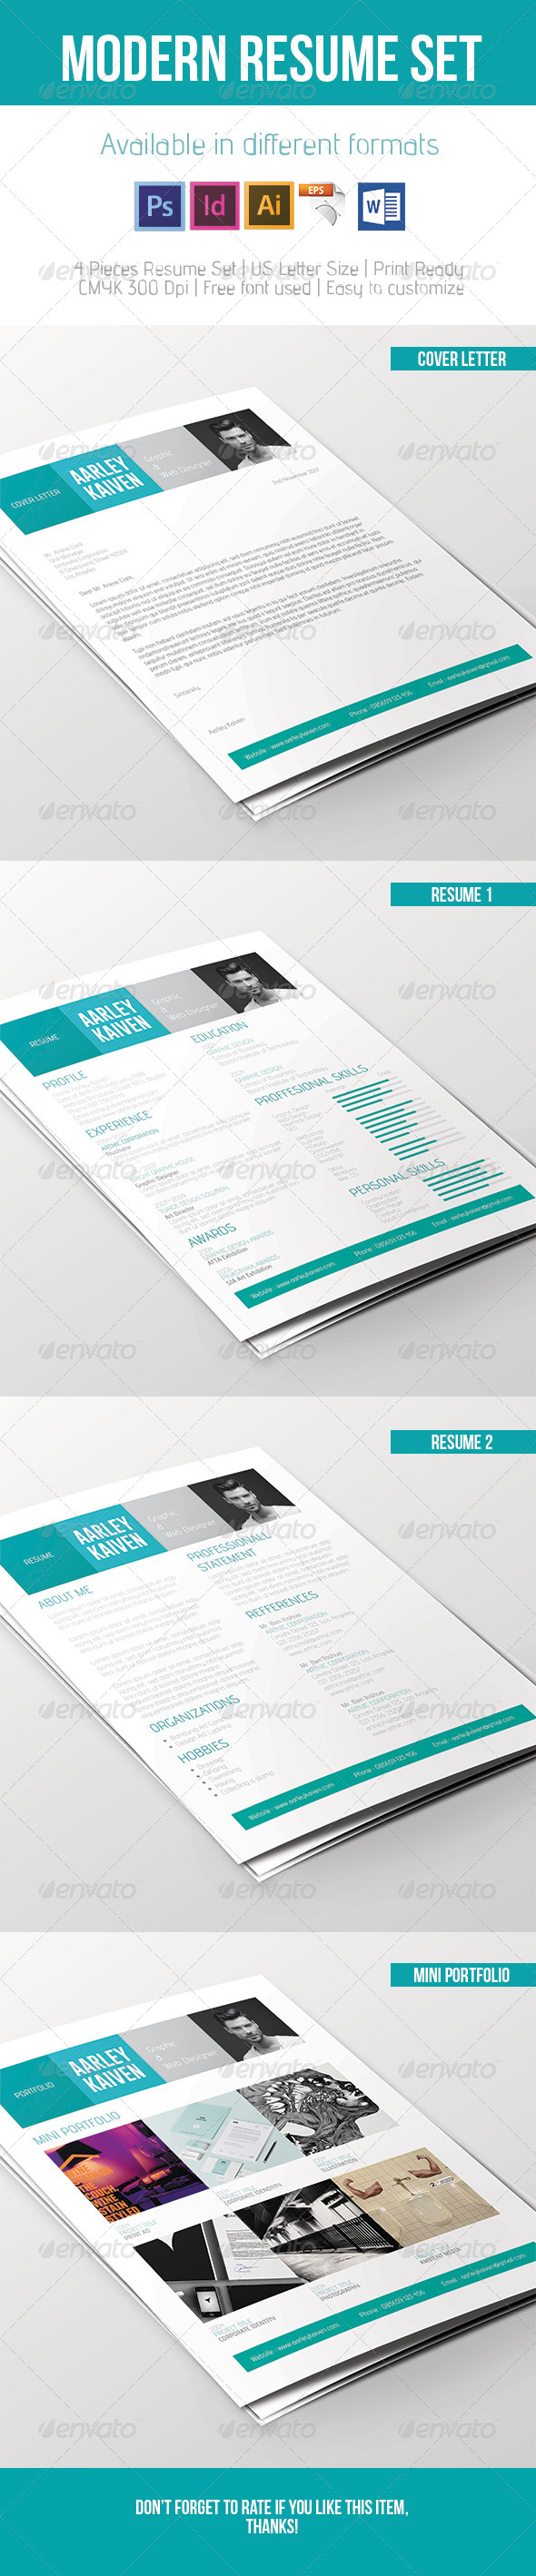 GraphicRiver Modern Resume Set 7361653